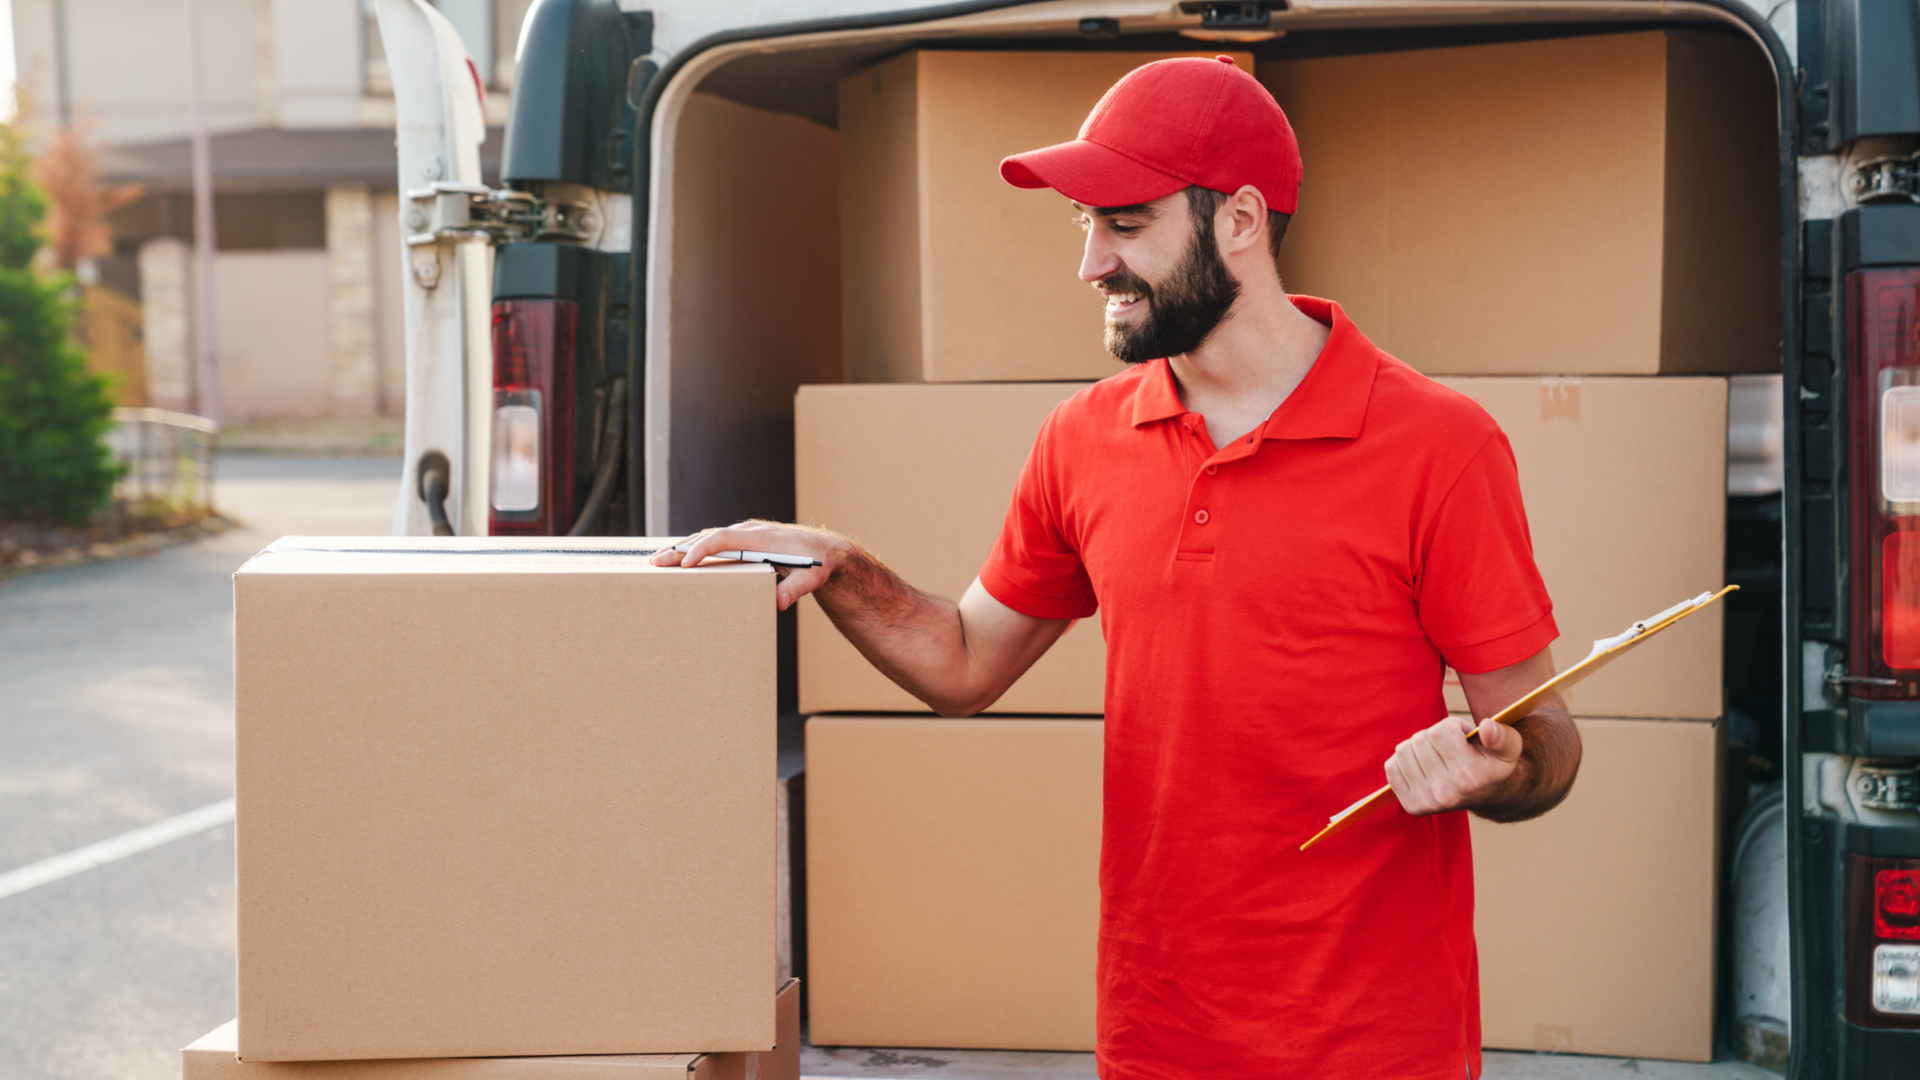 How can online retailers improve customer experiences using shipping and fulfilment in 2021?